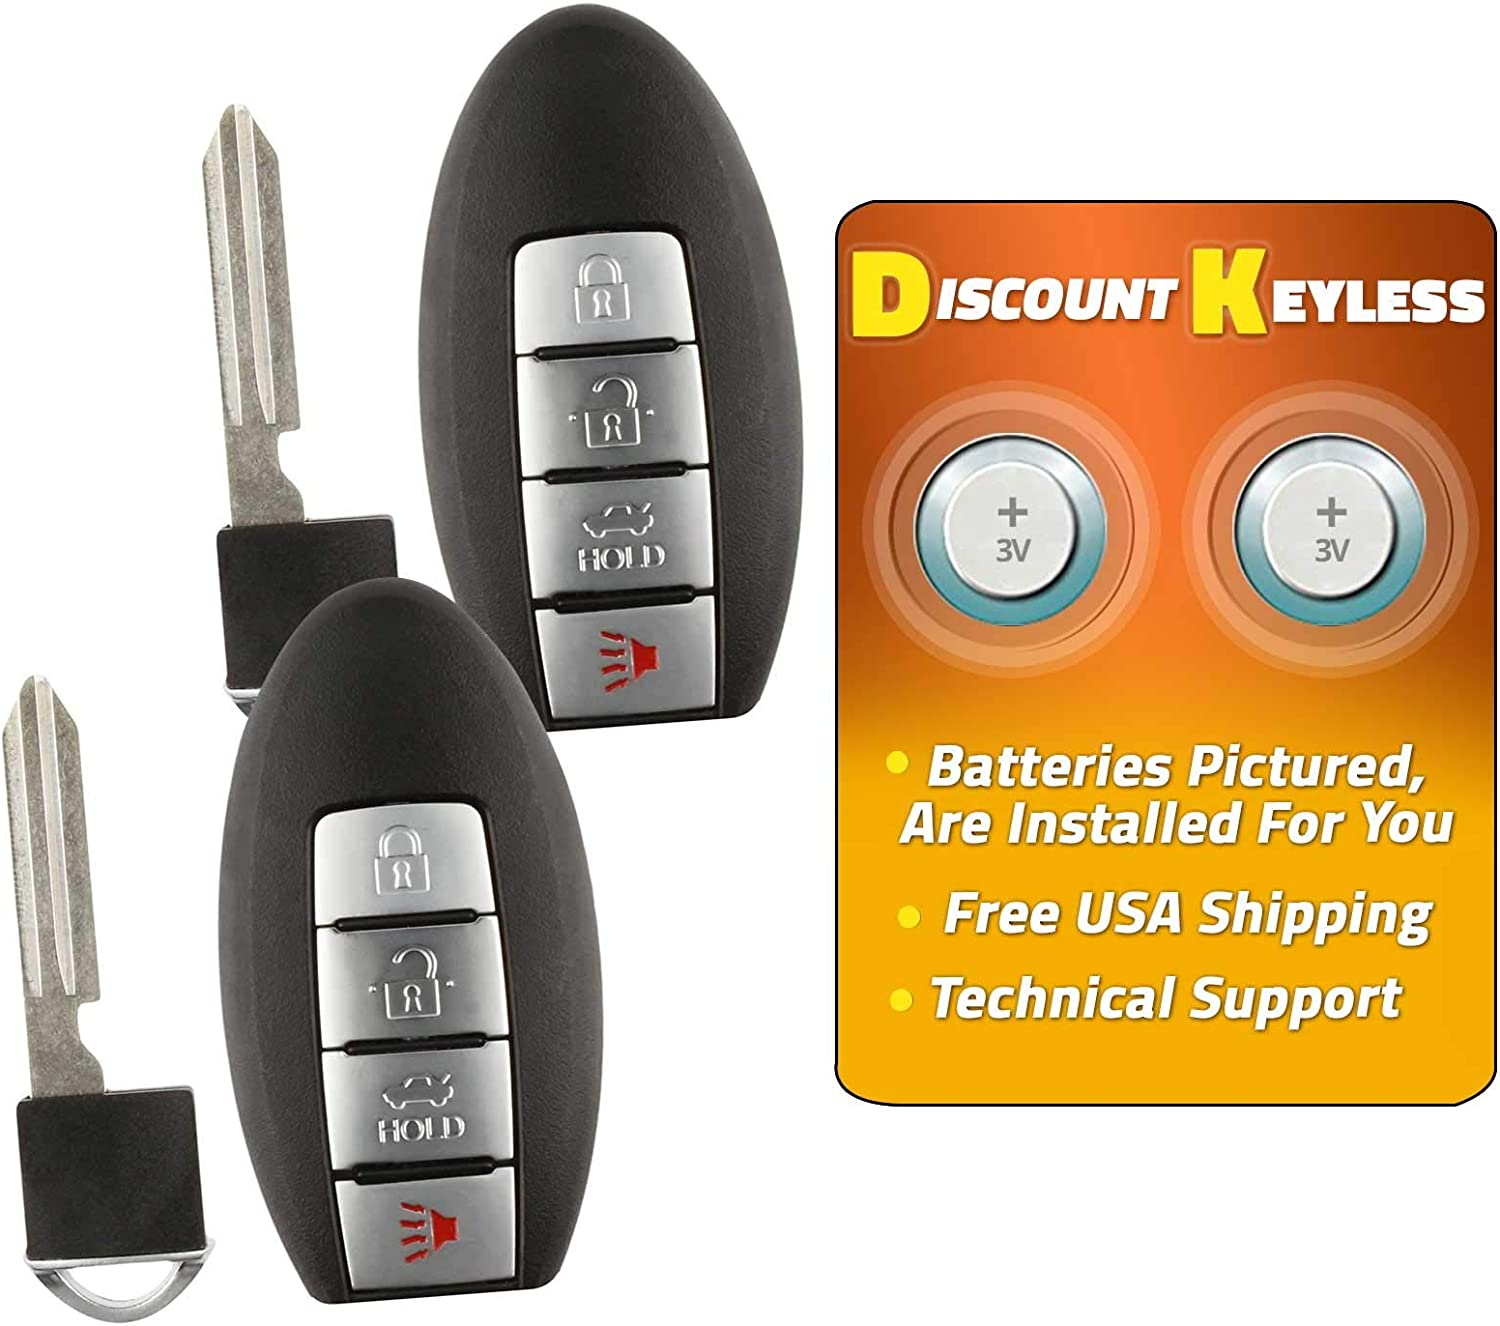 KeylessOption Keyless Entry Remote Smart Key Fob Case Shell Outer Cover For Nissan Altima Maxima Murano Infiniti G37 KR55WK48903